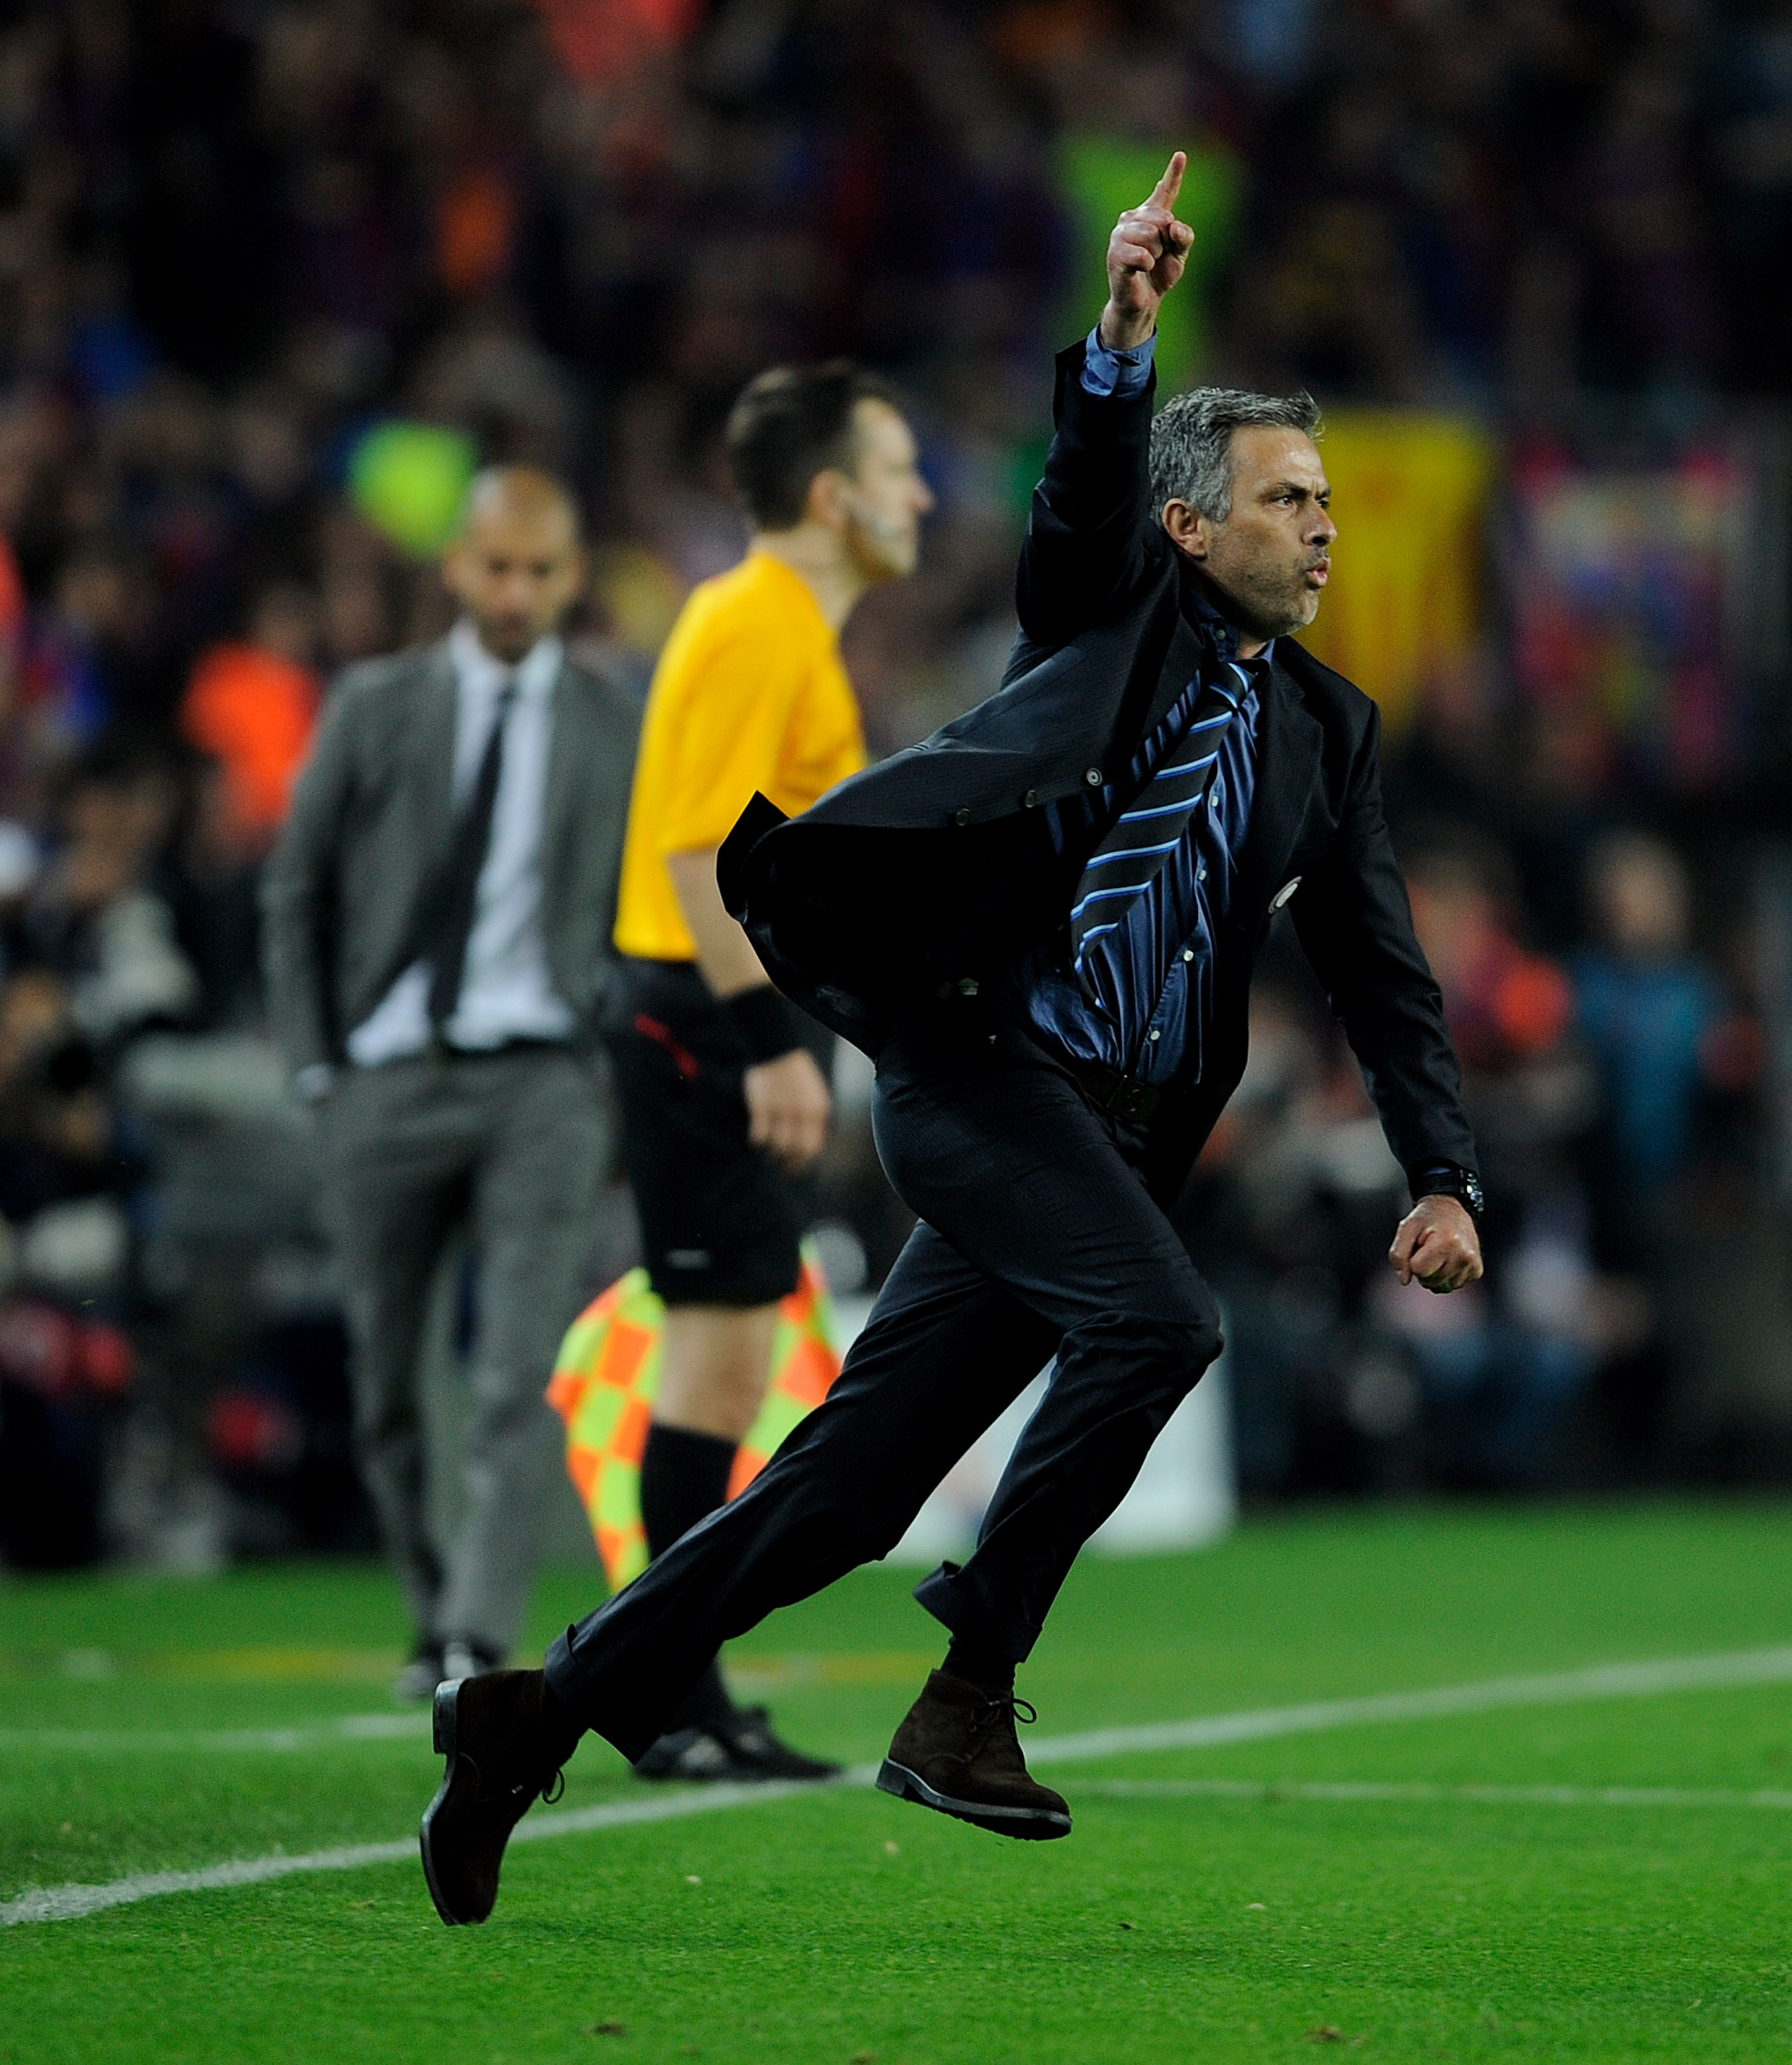 Barcelona Vs Man Utd Champions League Final 2011: Why The Press Conferences Of Mourinho And Guardiola Tell